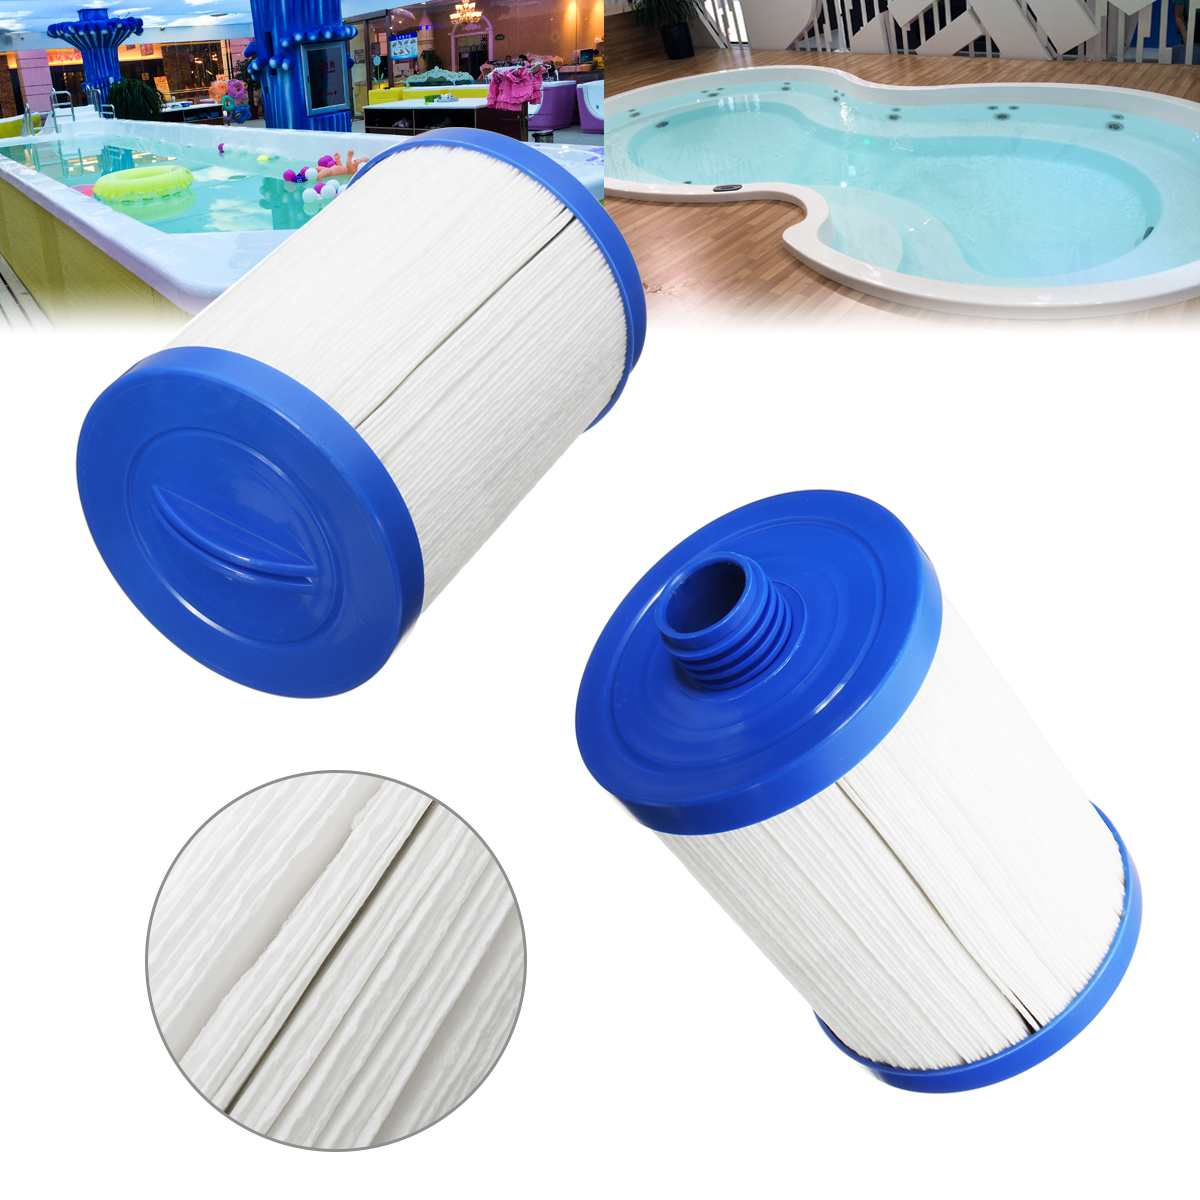 Filter Cartridge Replacement for Sapphire Heritage Signature Cyclone Monarch LA Spas Hot Tub PoolSpa Filter Semi-Circular Handle image